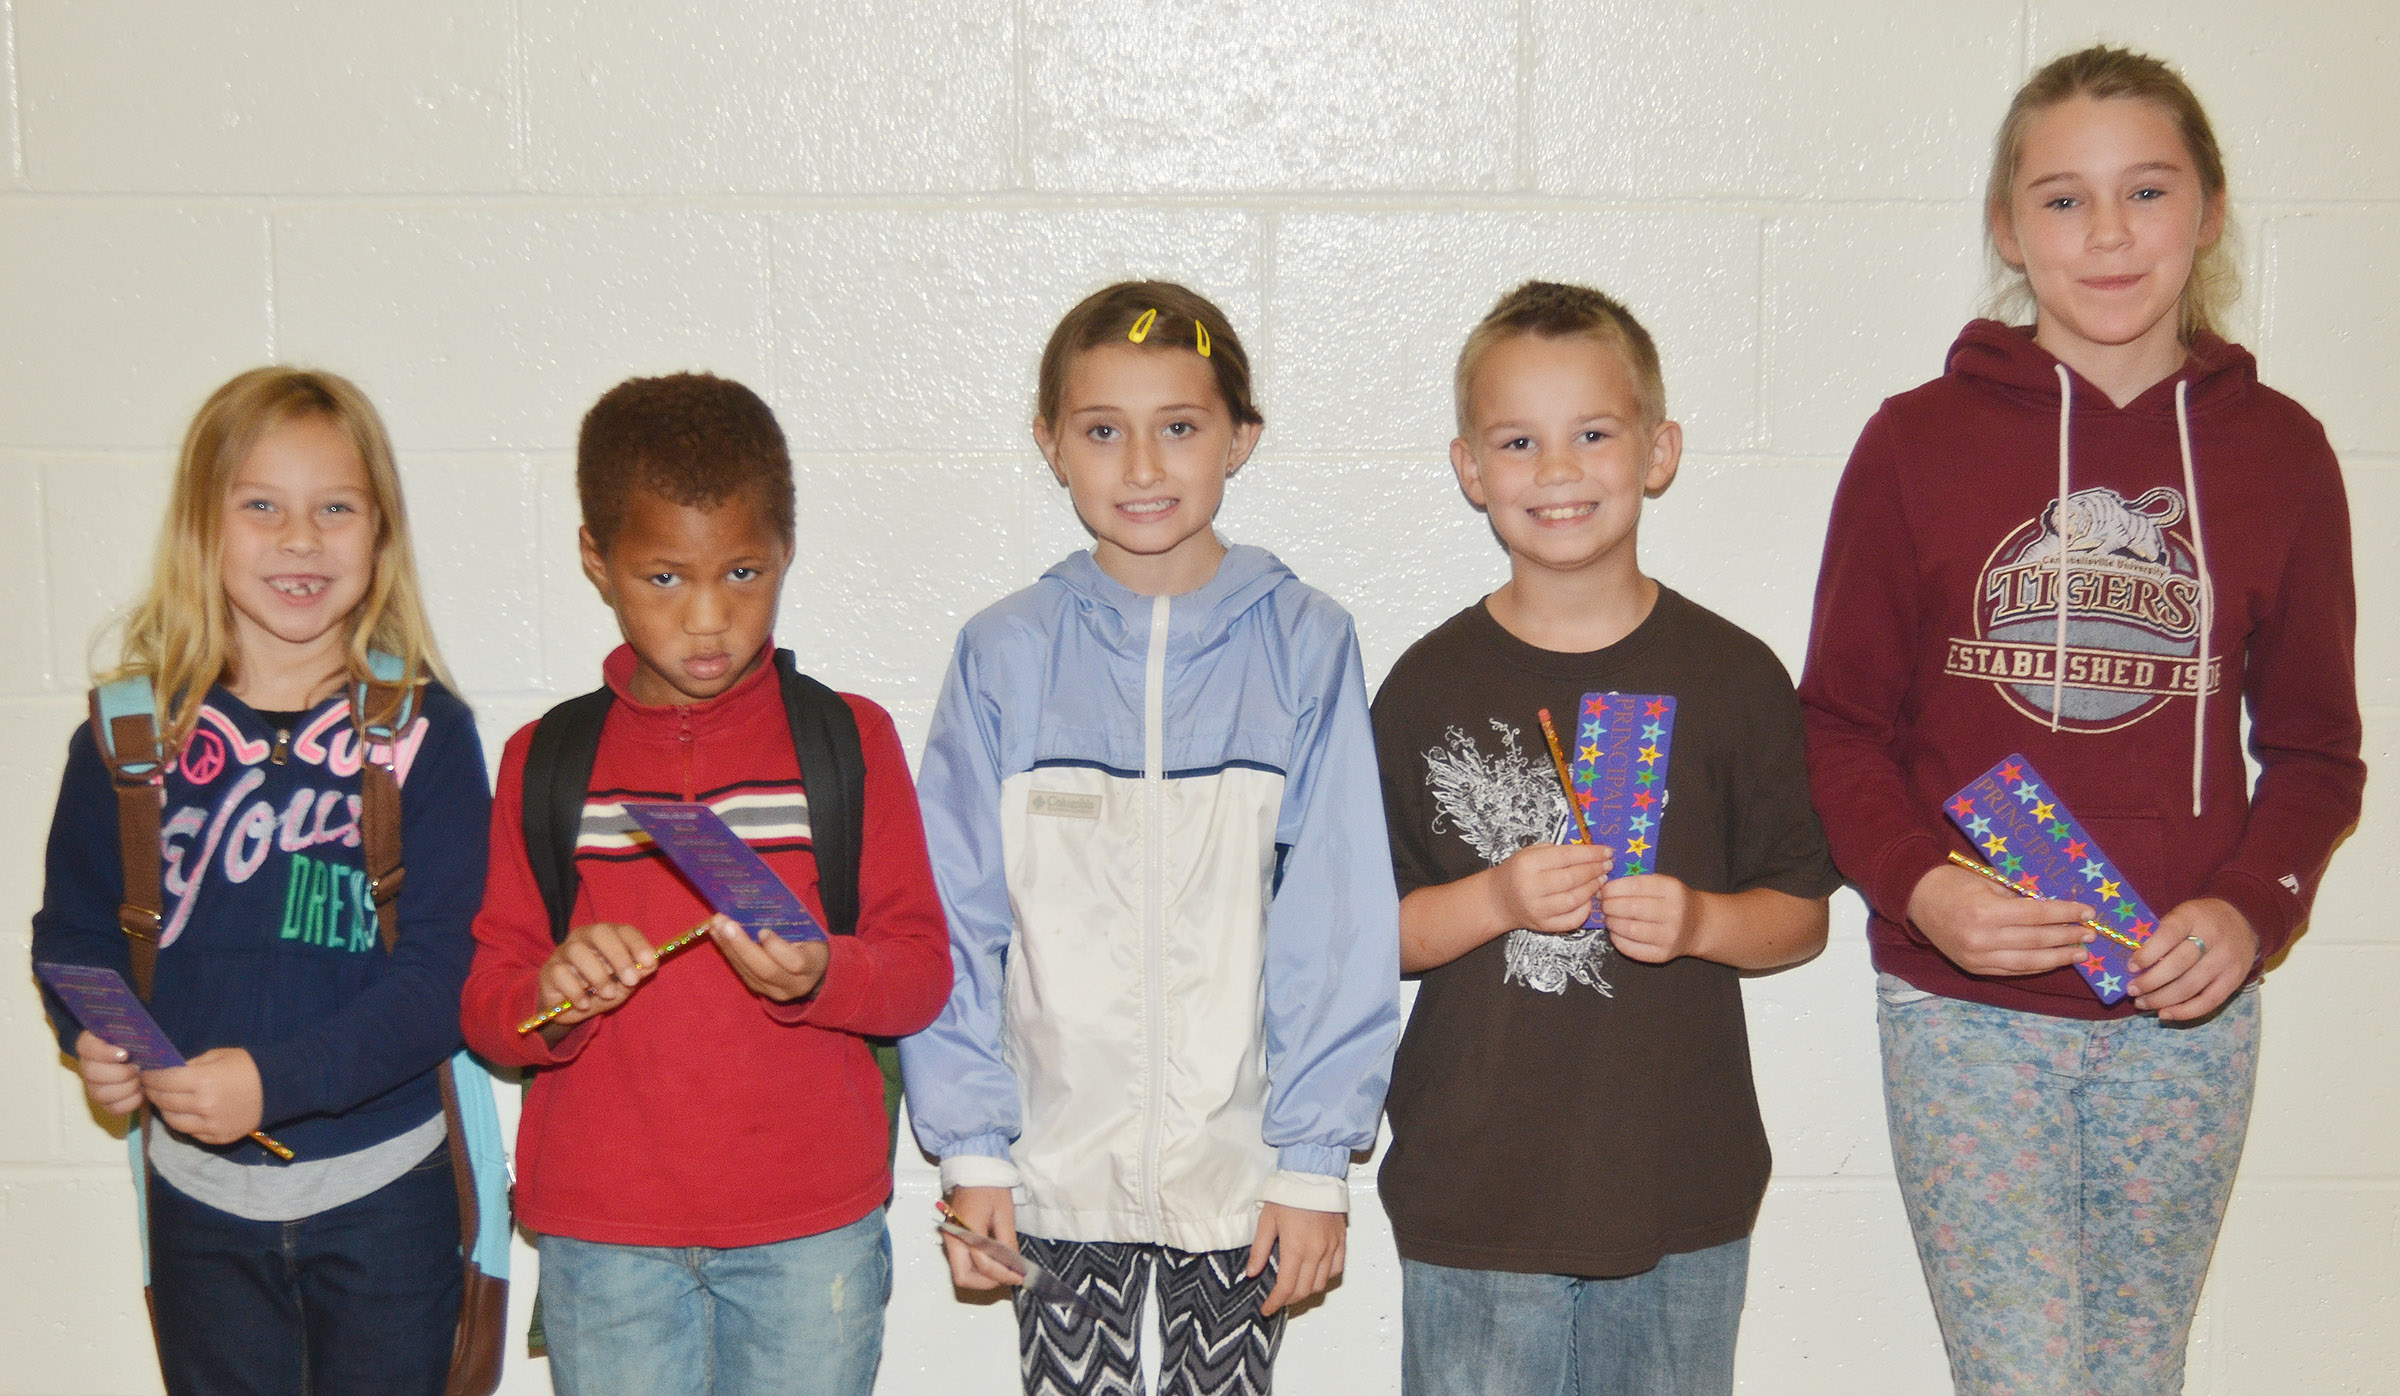 From left are first-grader Kira Dotson, kindergartener Jamerius Miller, third-grader Cadence Burton, second-grader Jackson Bates and fifth-grader Brooklynn Giles. Absent from the photo is fourth-grader Kealey Mann.